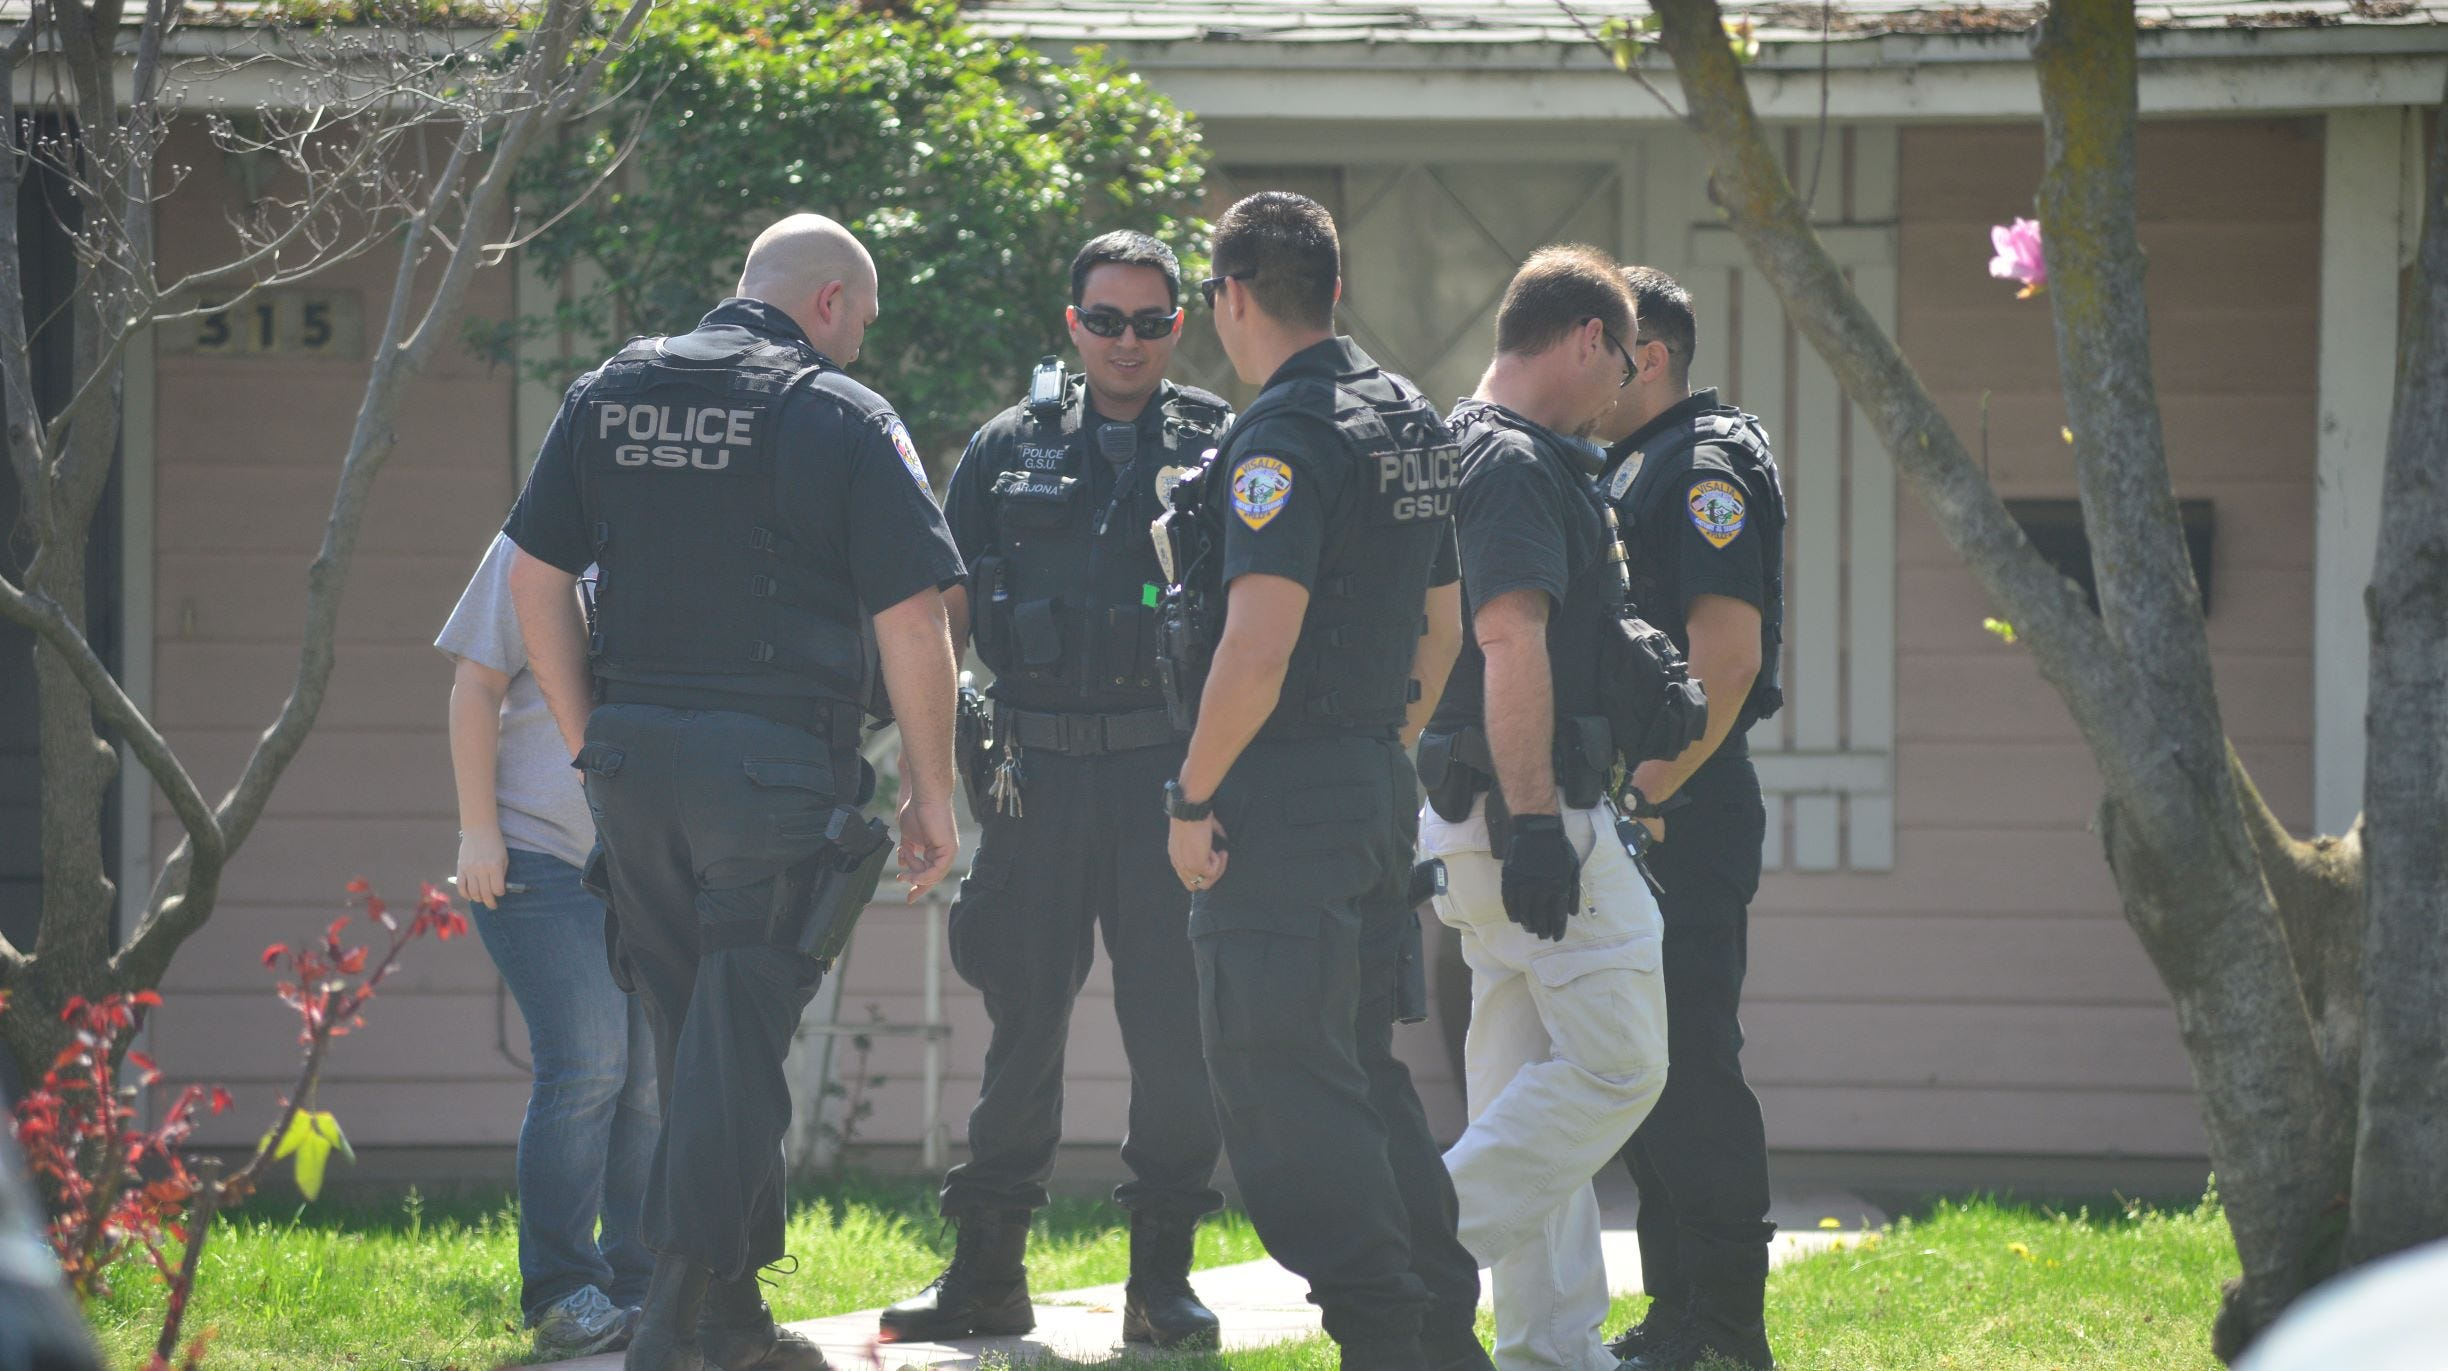 Two Visalia officers have been charged with multiple felonies stemming from a series of search warrants served in Tulare.